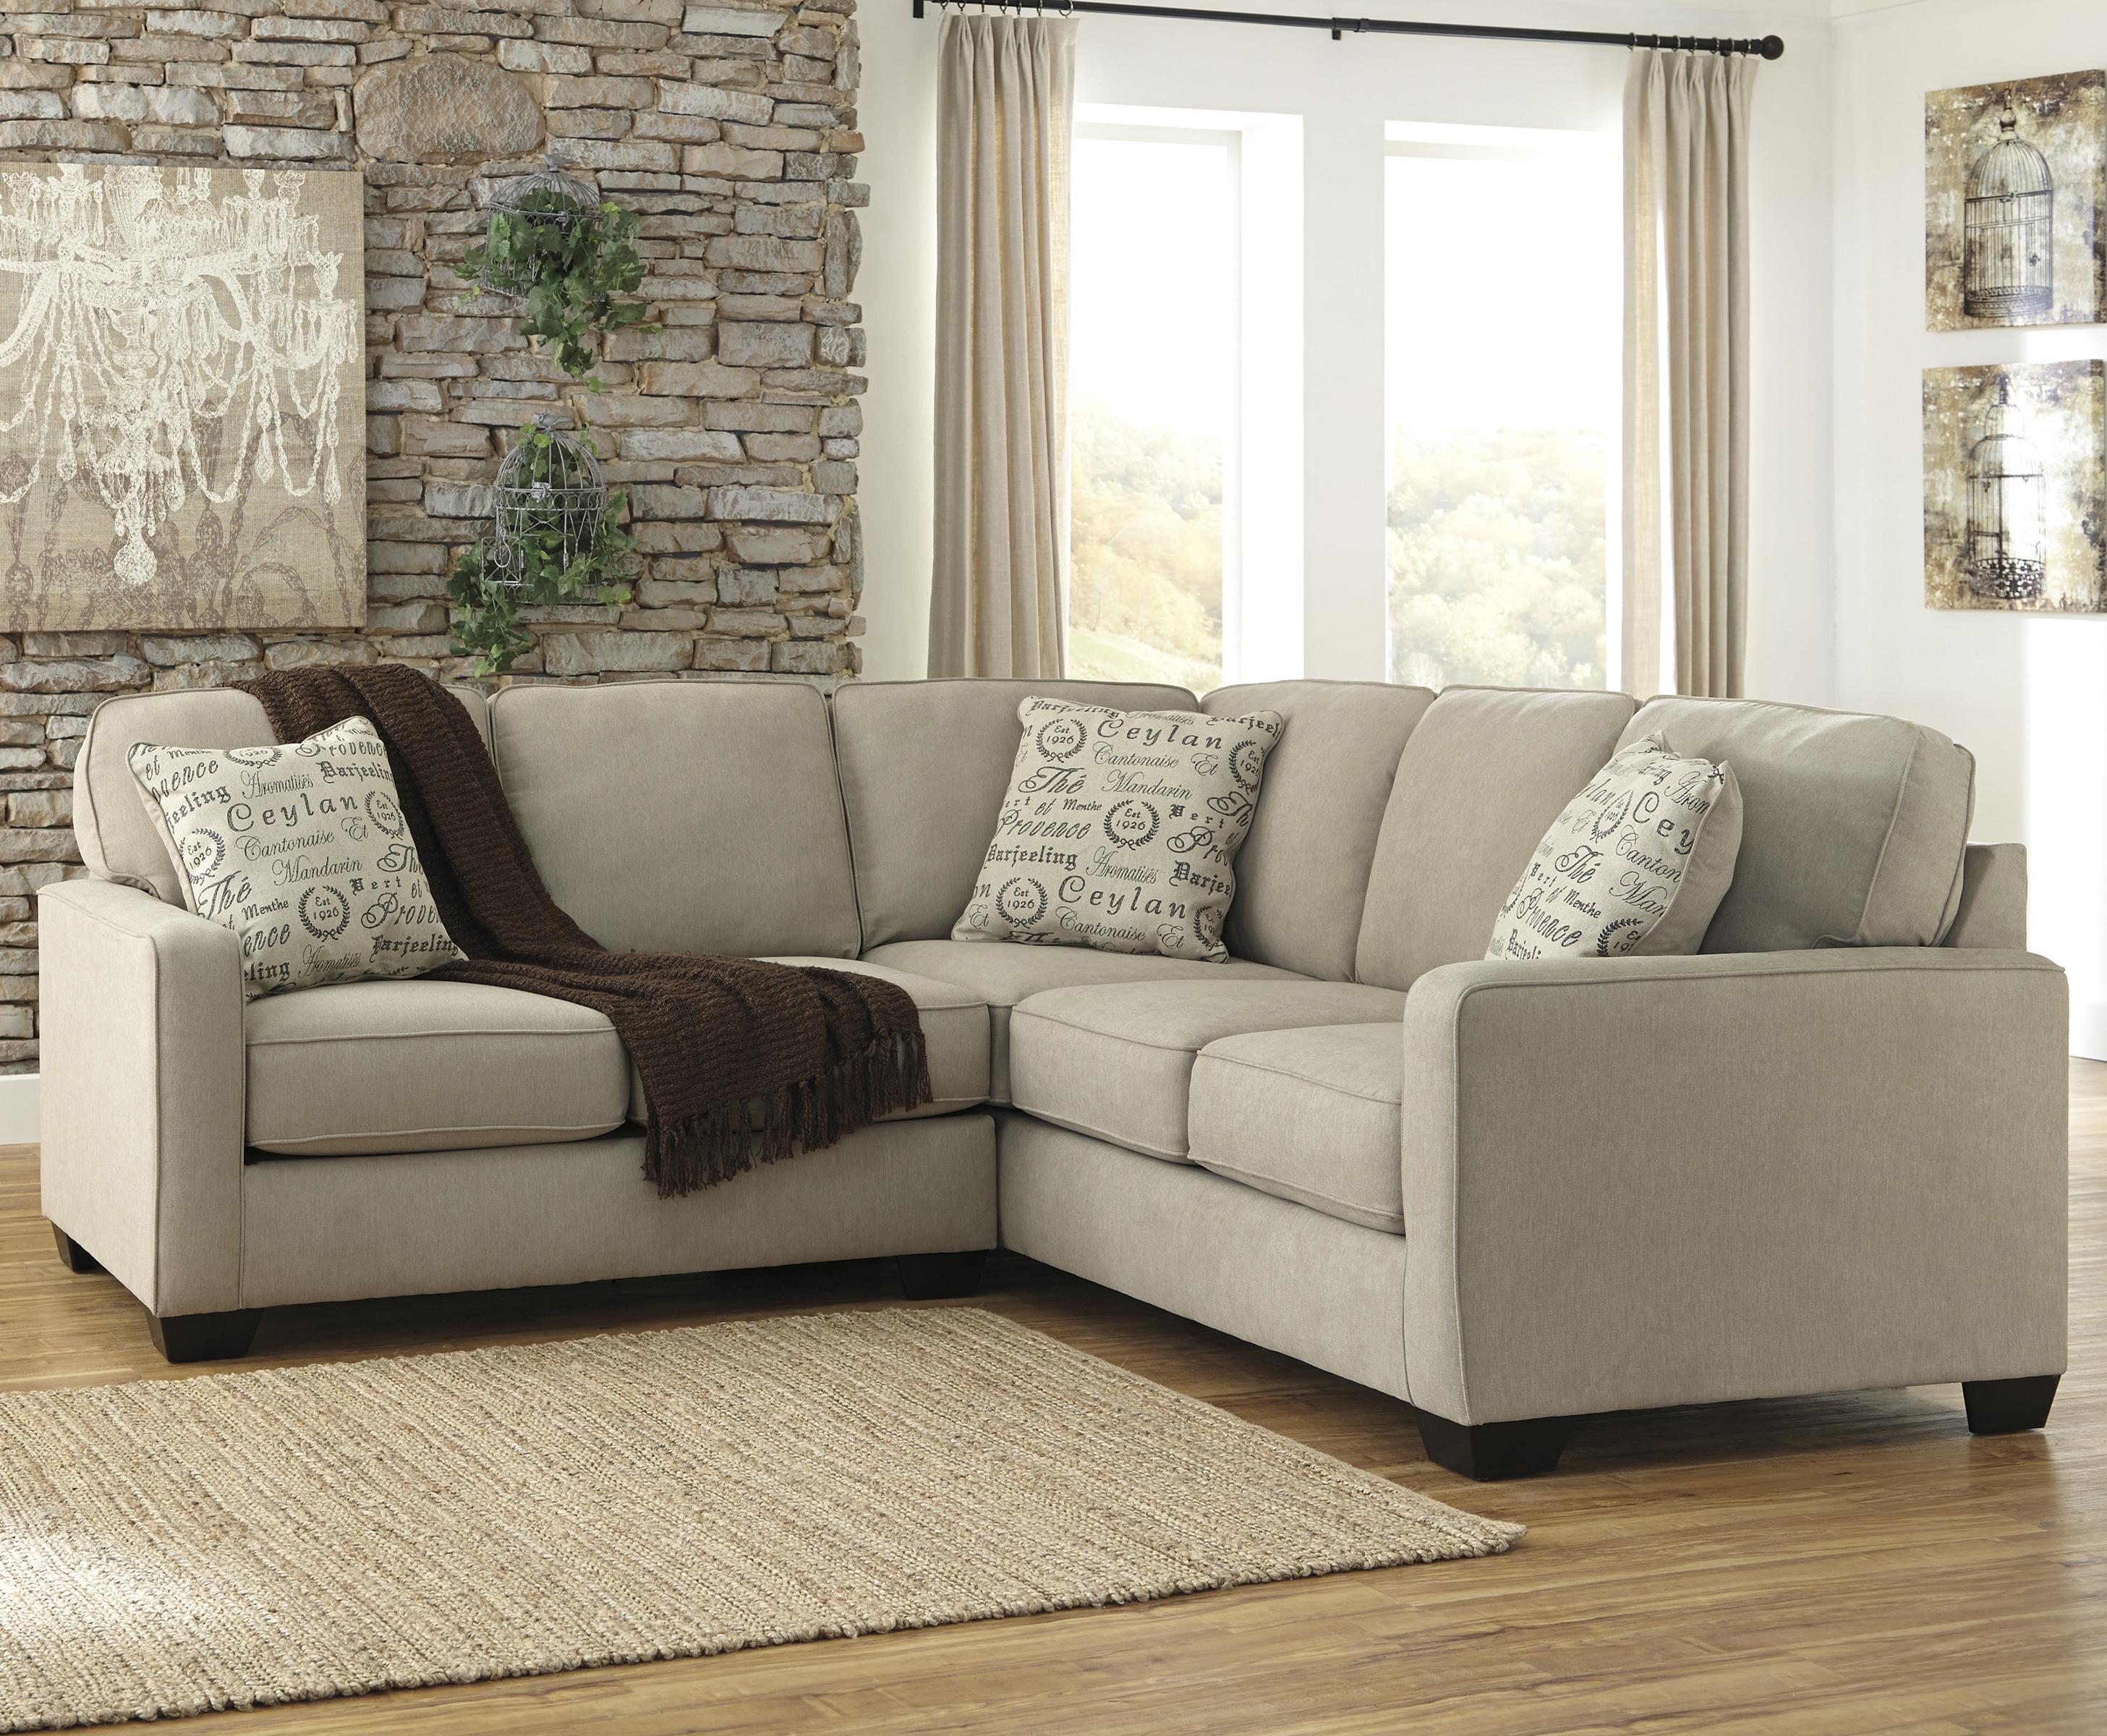 Ashley Signature Design Alenya Quartz 2 Piece Sectional With Left Loveseat Rooms And Rest